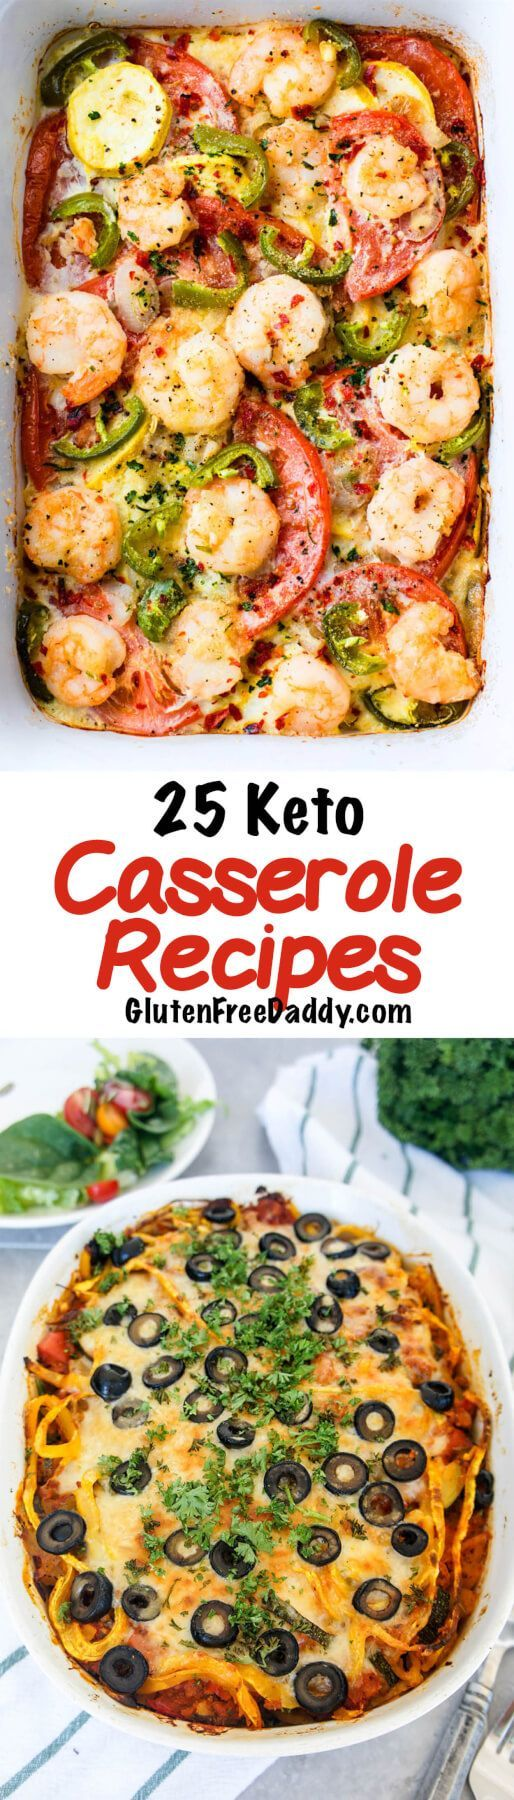 25 of the Best Ever Keto Casserole Recipes – Cooking is Easy Now with These Recipes